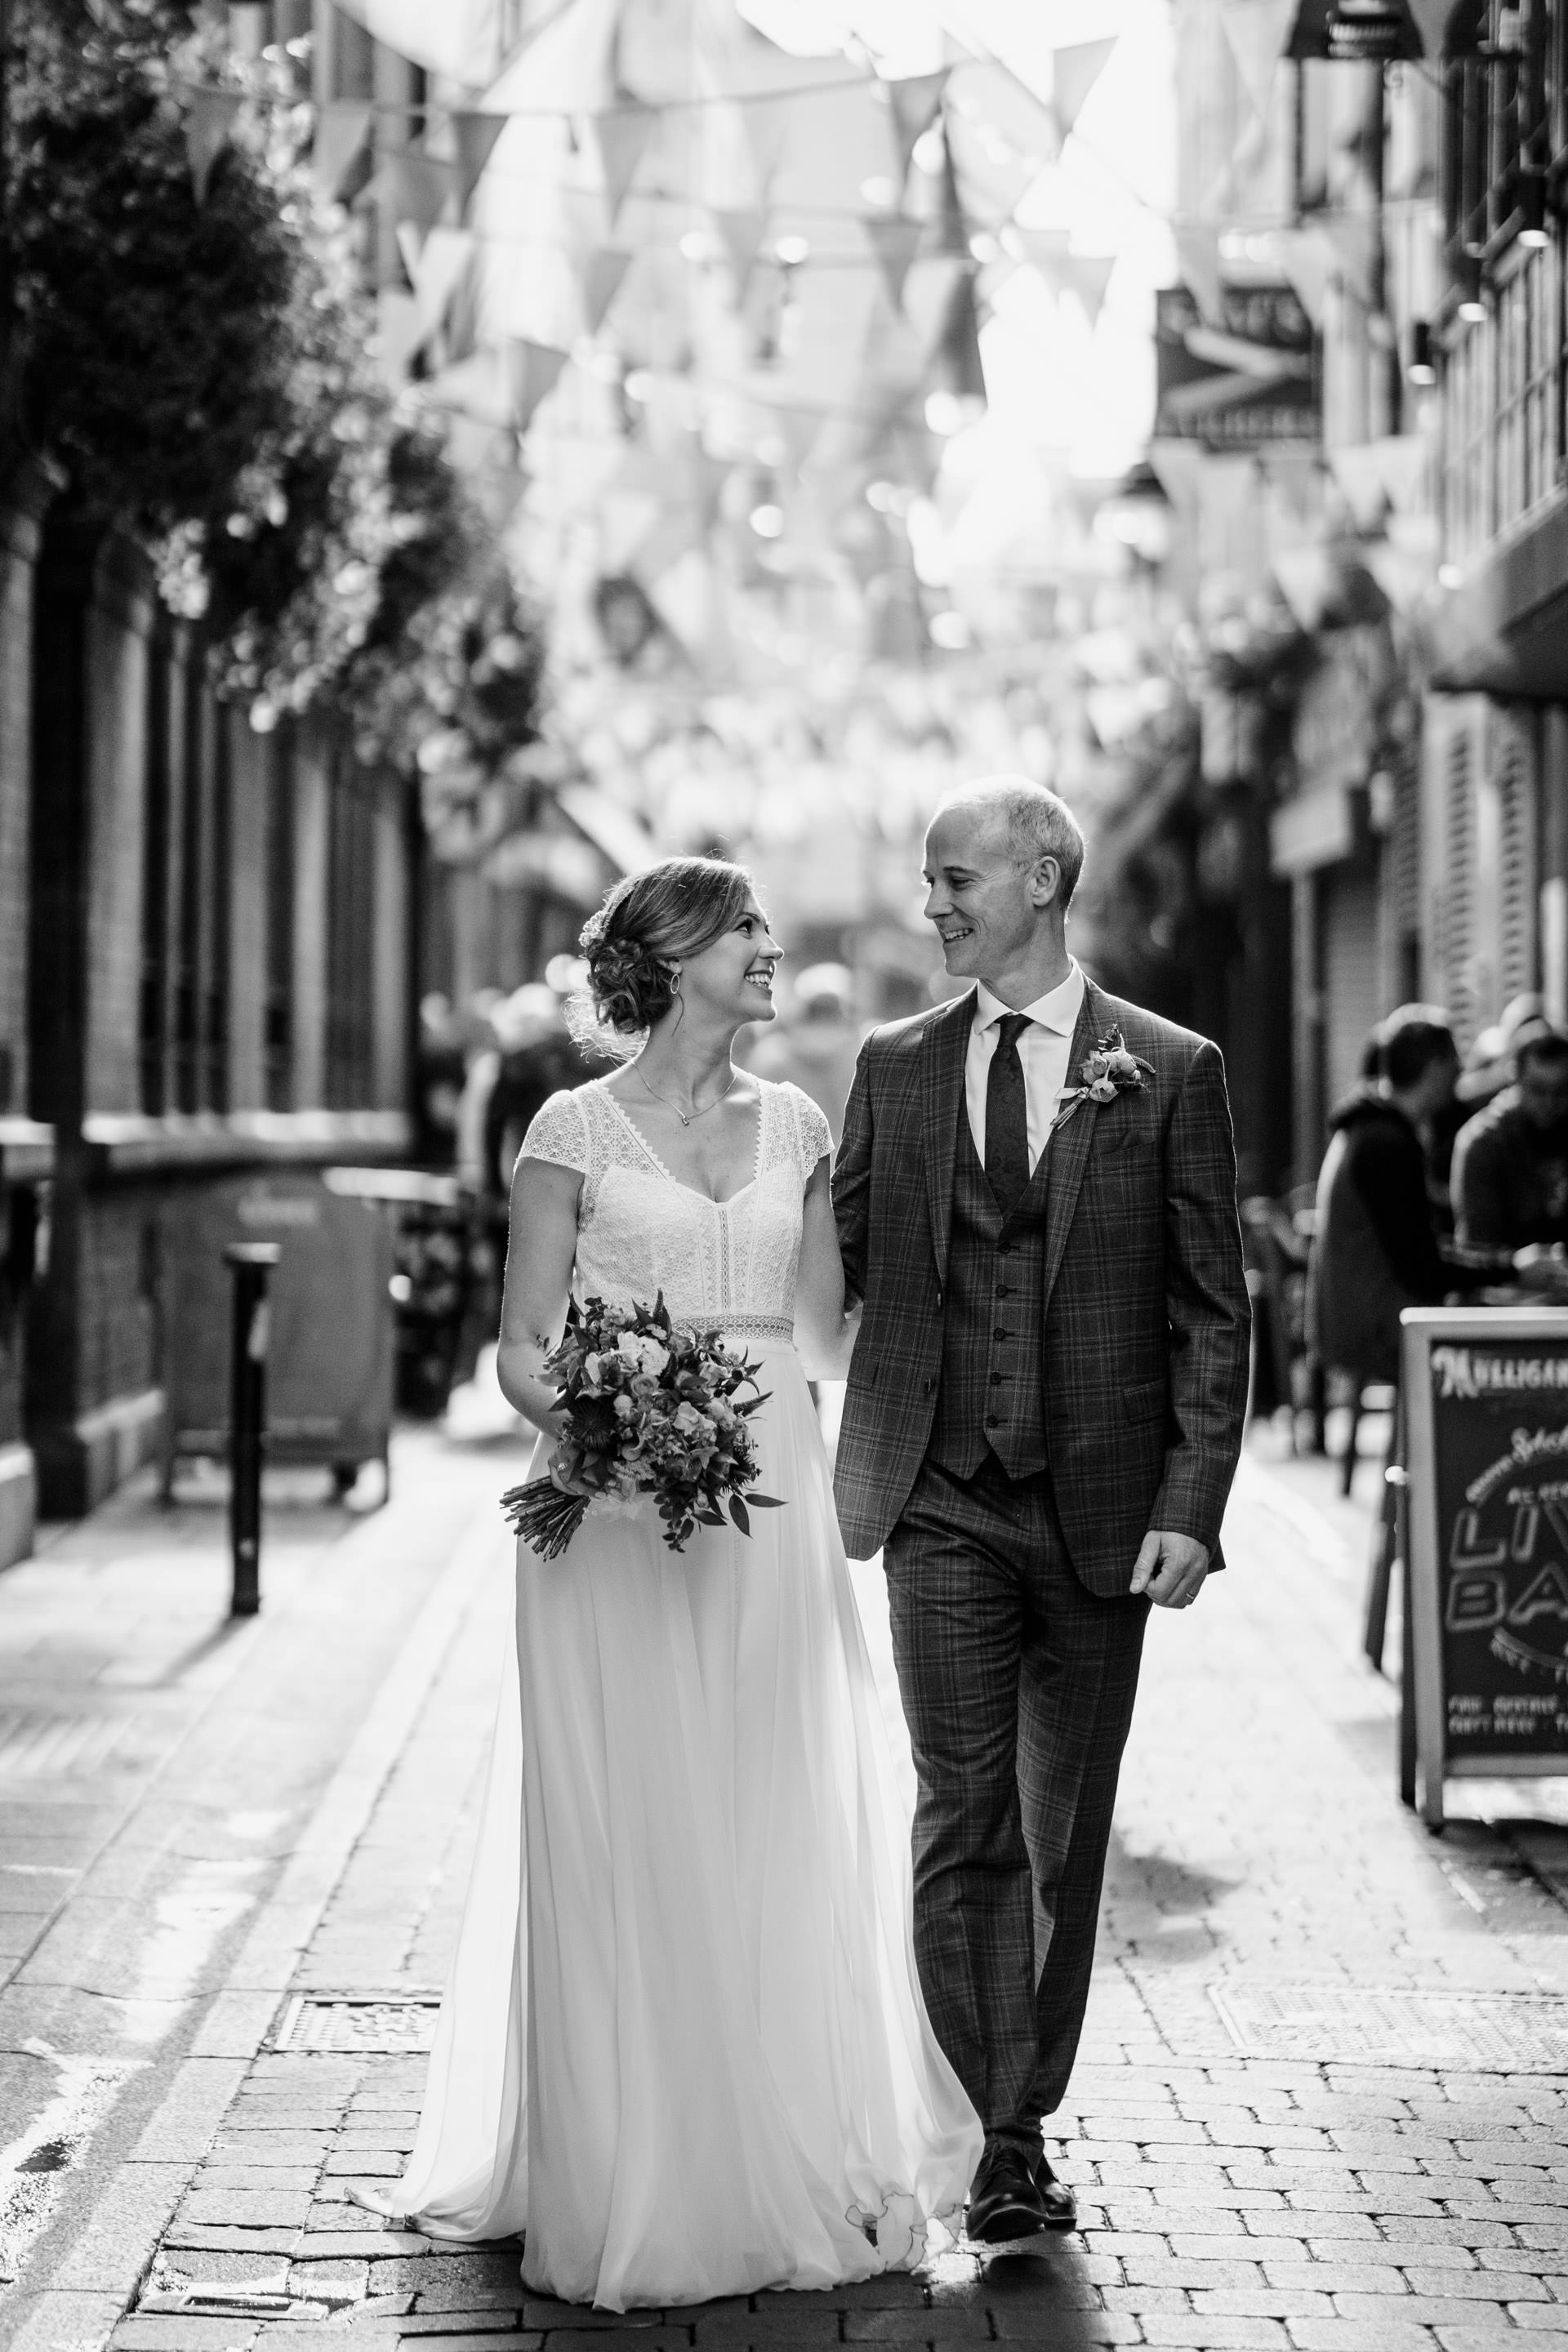 s&r_the_shelbourne_hotel_wedding_photographer_livia_figueiredo_21.jpg